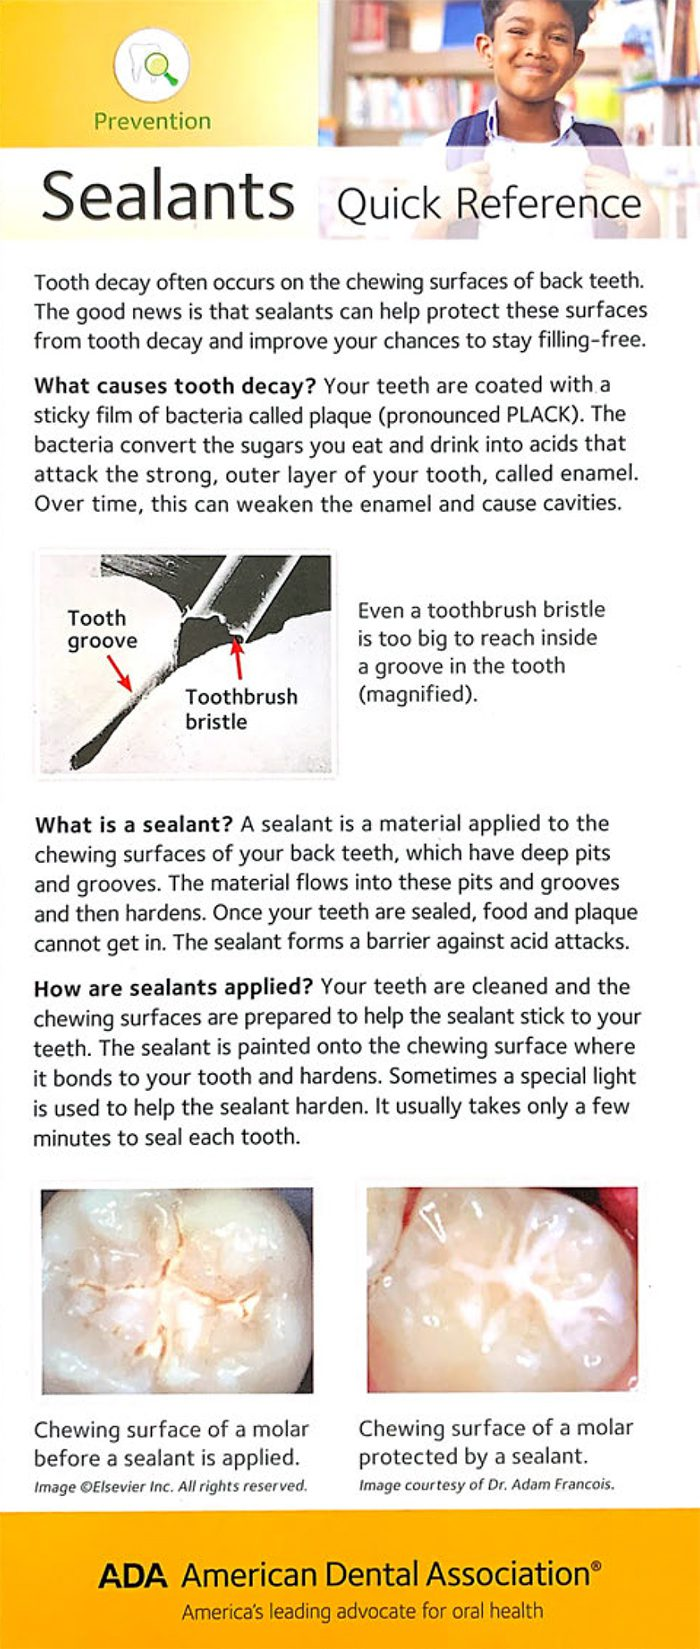 The cover of the Sealants brochure showing sealants in the grooves of a tooth.